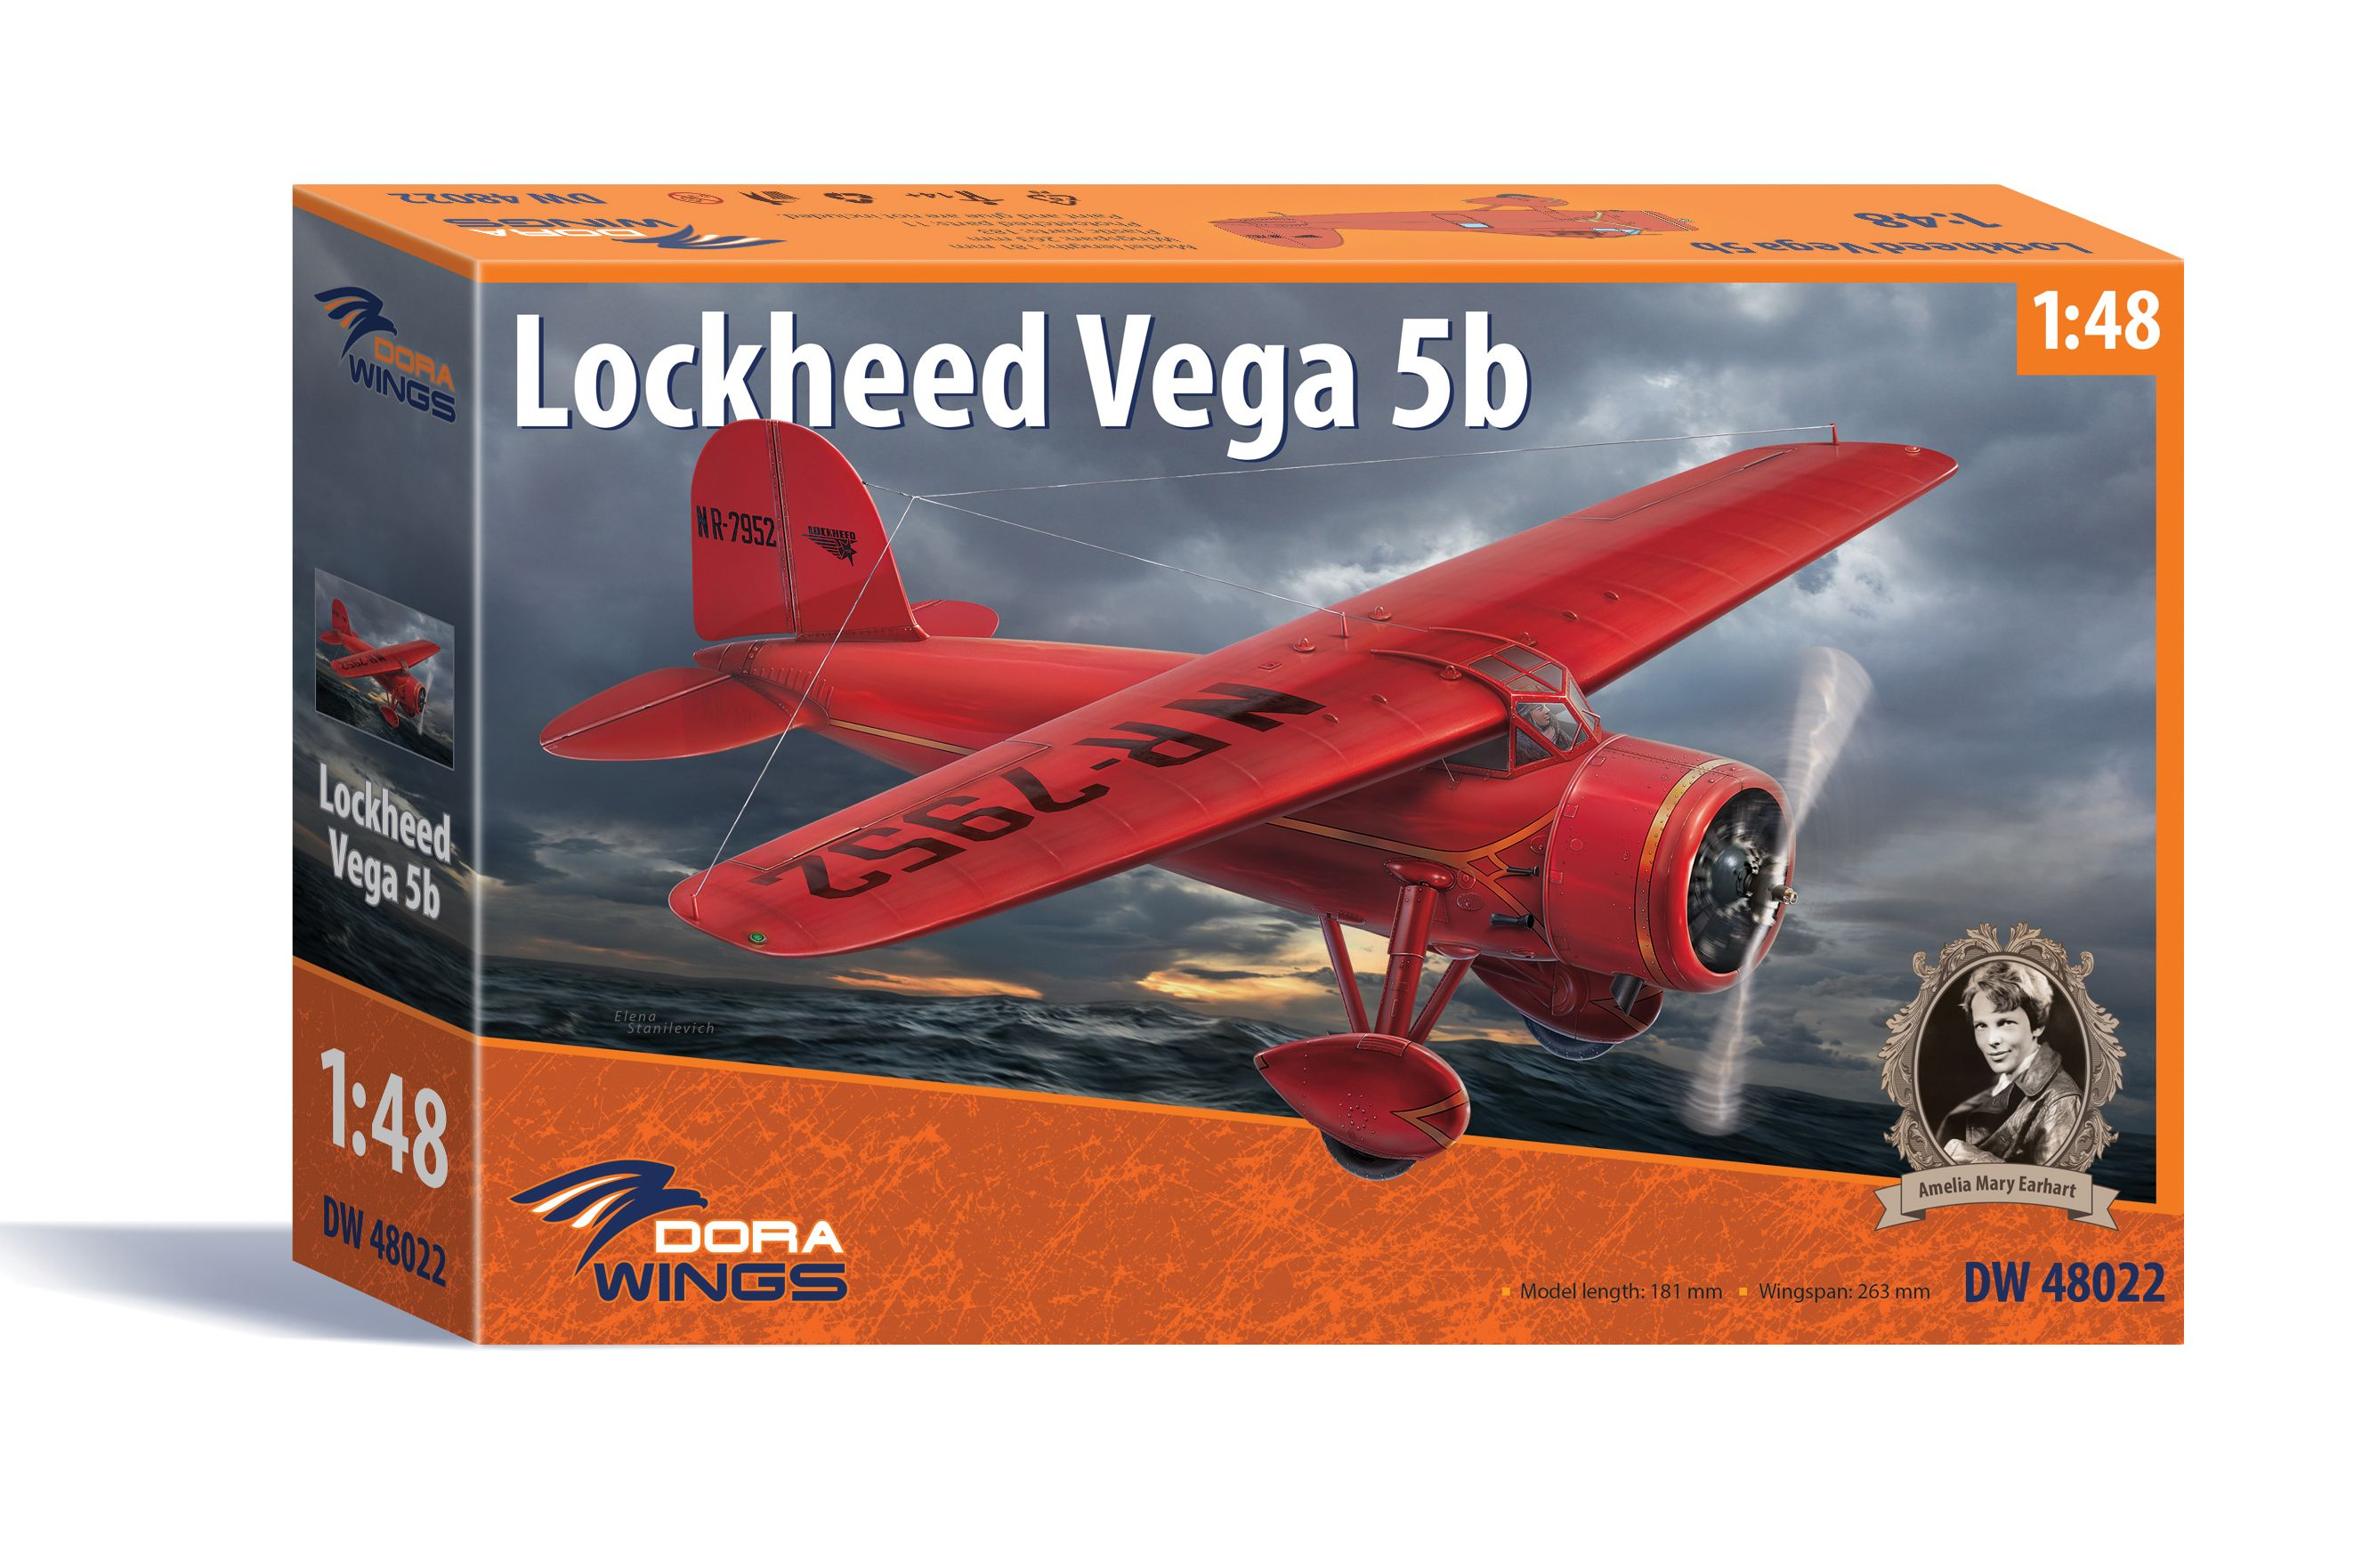 "Dora Wings Lockheed Vega 5b ""Record flights"""